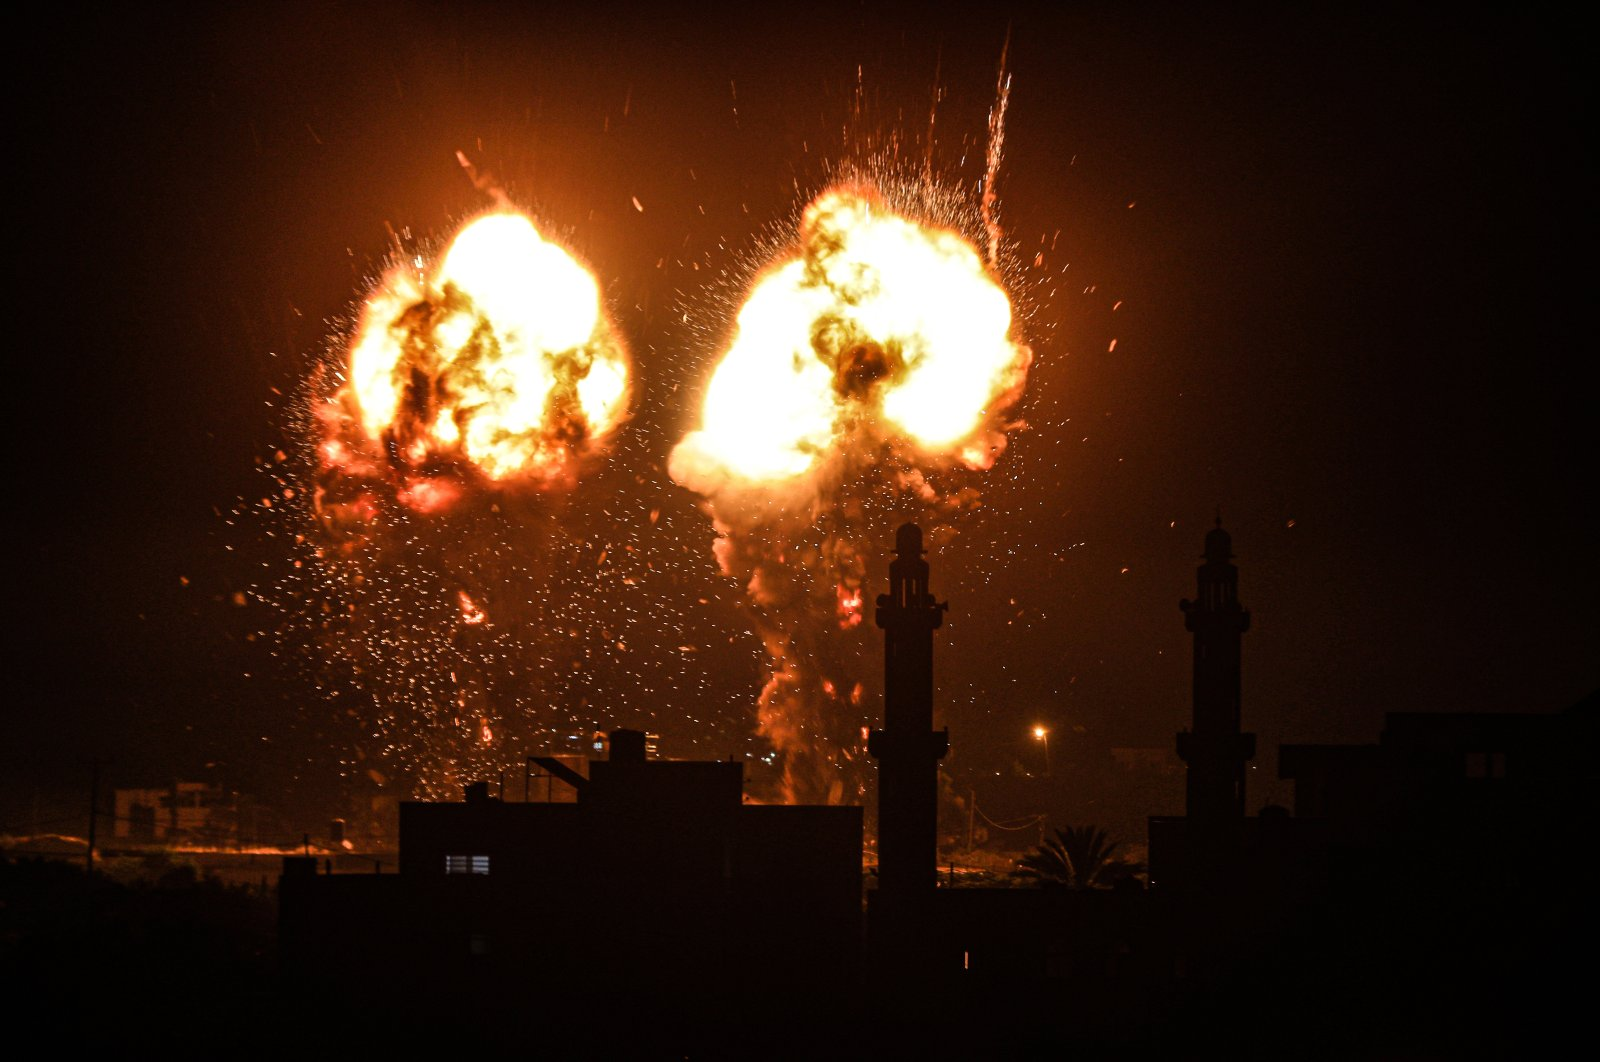 Explosions light up the night sky above buildings in Gaza City as Israeli forces shell the Palestinian enclave, early on June 16, 2021. (AA Photo)